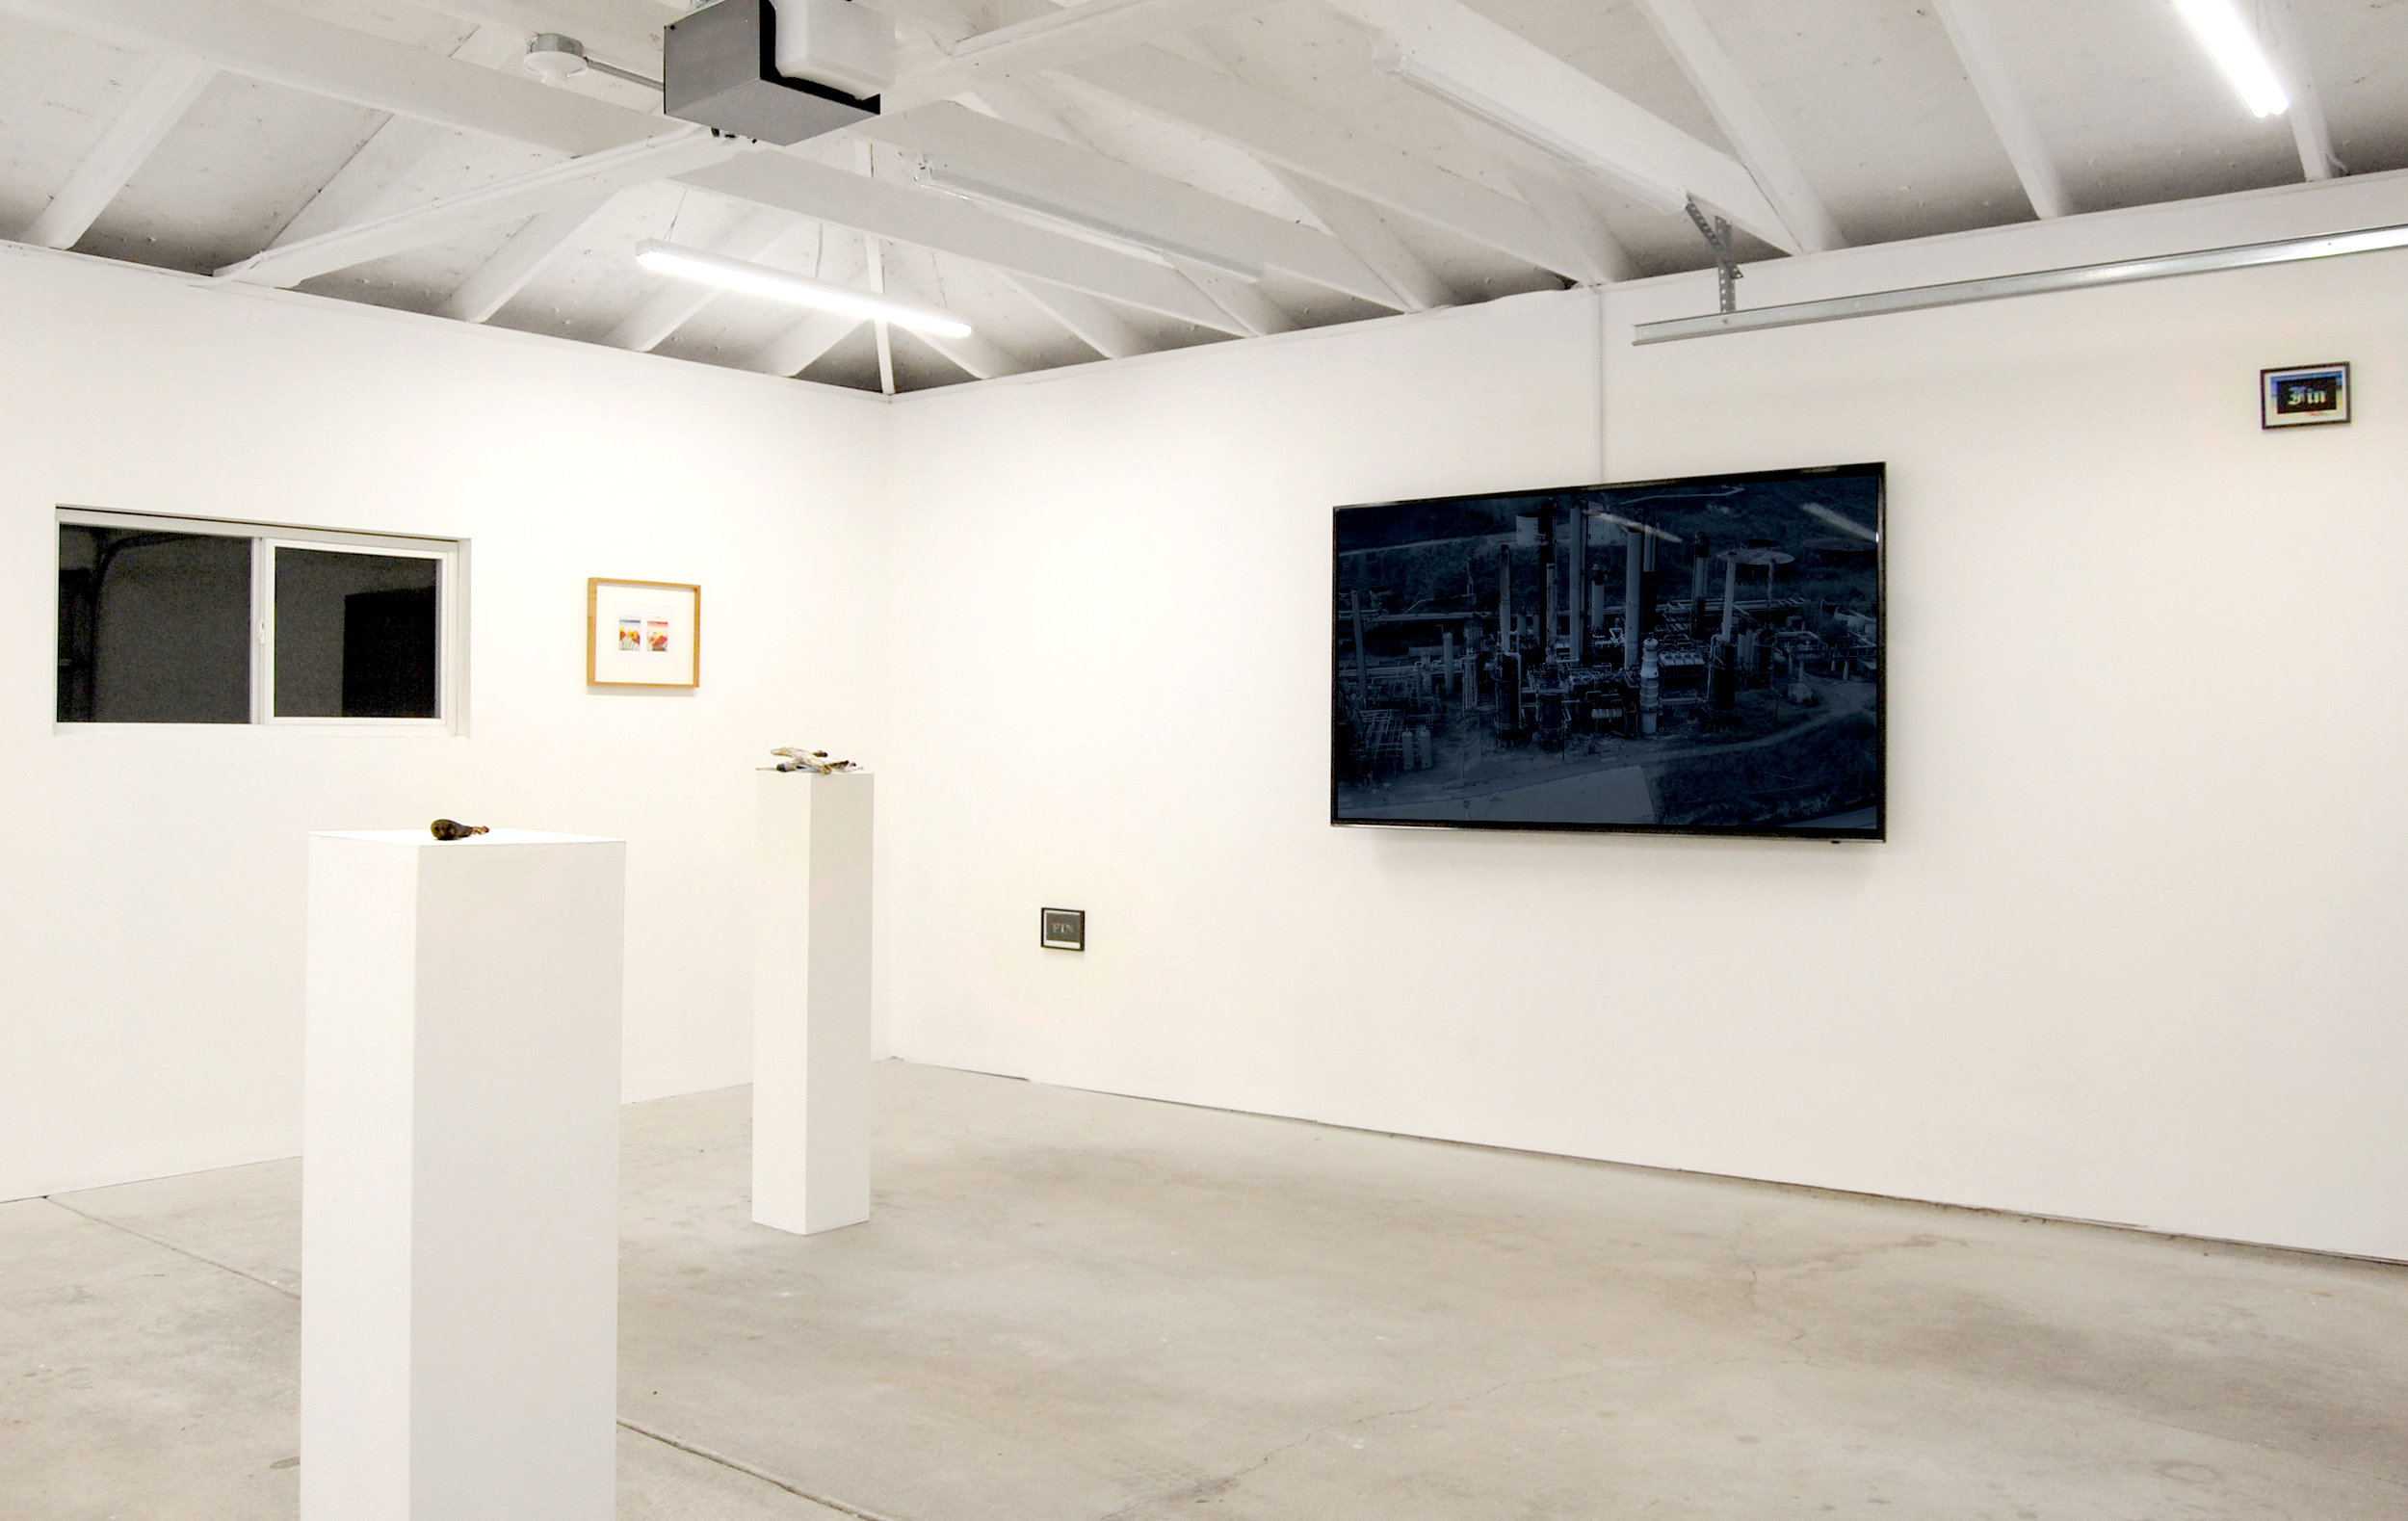 Forced Autumn , installation view at Chicago Manual Style, 2017. From left, Ricardo Morales-Hernández, Drawing instrument, ' Stylus ,' c. 2016–2017, wood and paint, Allora & Calzadilla,  La Noche Que Volvimos a Ser Gente (The Night We Became People Again) , 2017. Digital HD colour video with sound, Courtesy Gladstone Gallery, Brussels and New York, and CARNE Adriana Martínez,  FIN Postcard , 2017, vinyl on postcard.